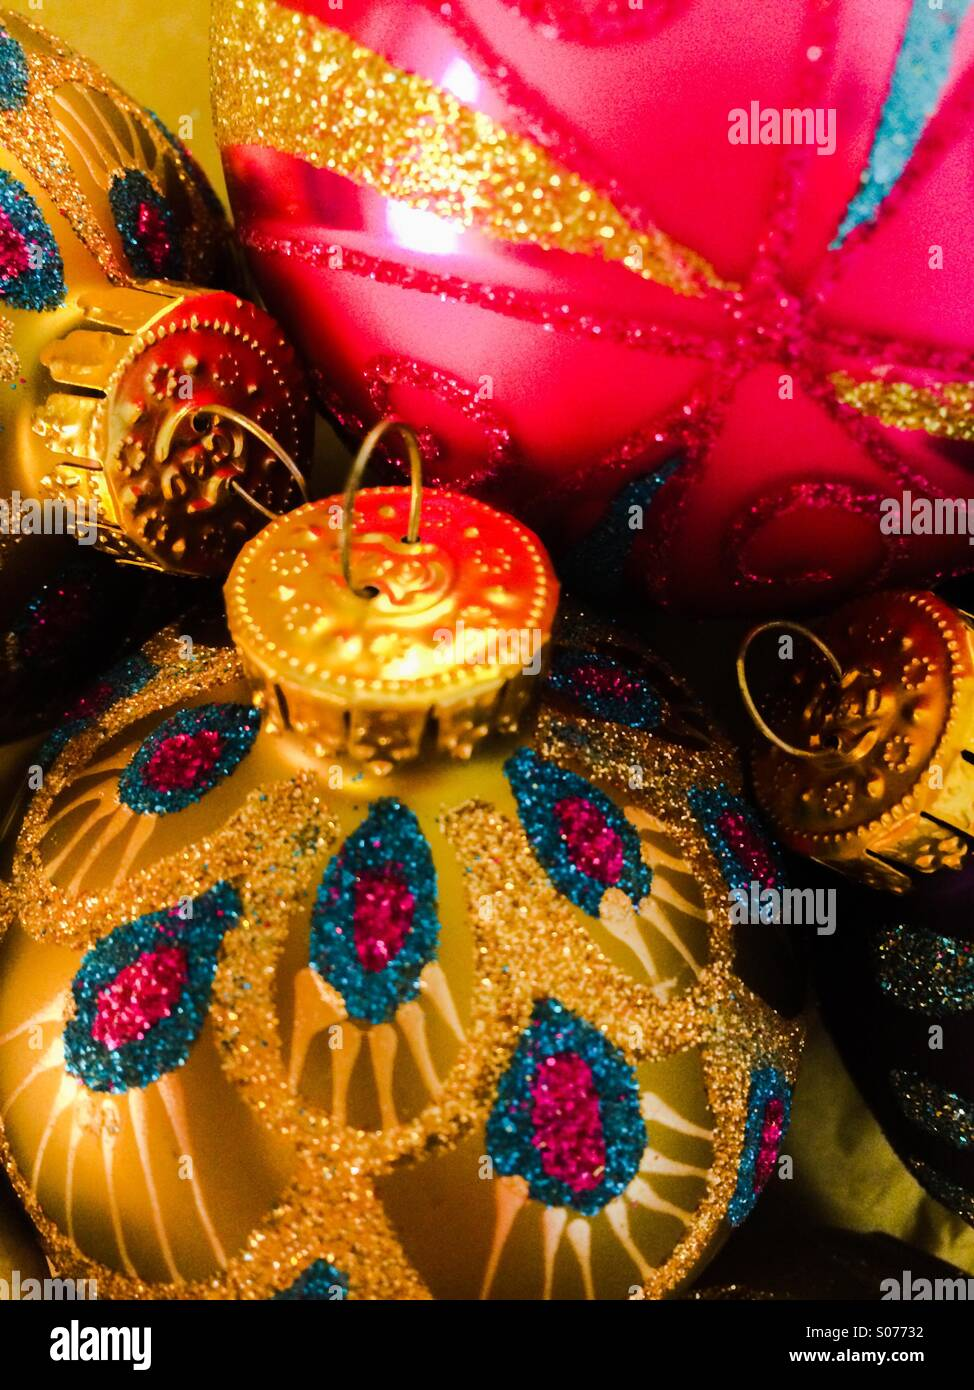 Christmas baubles - Stock Image